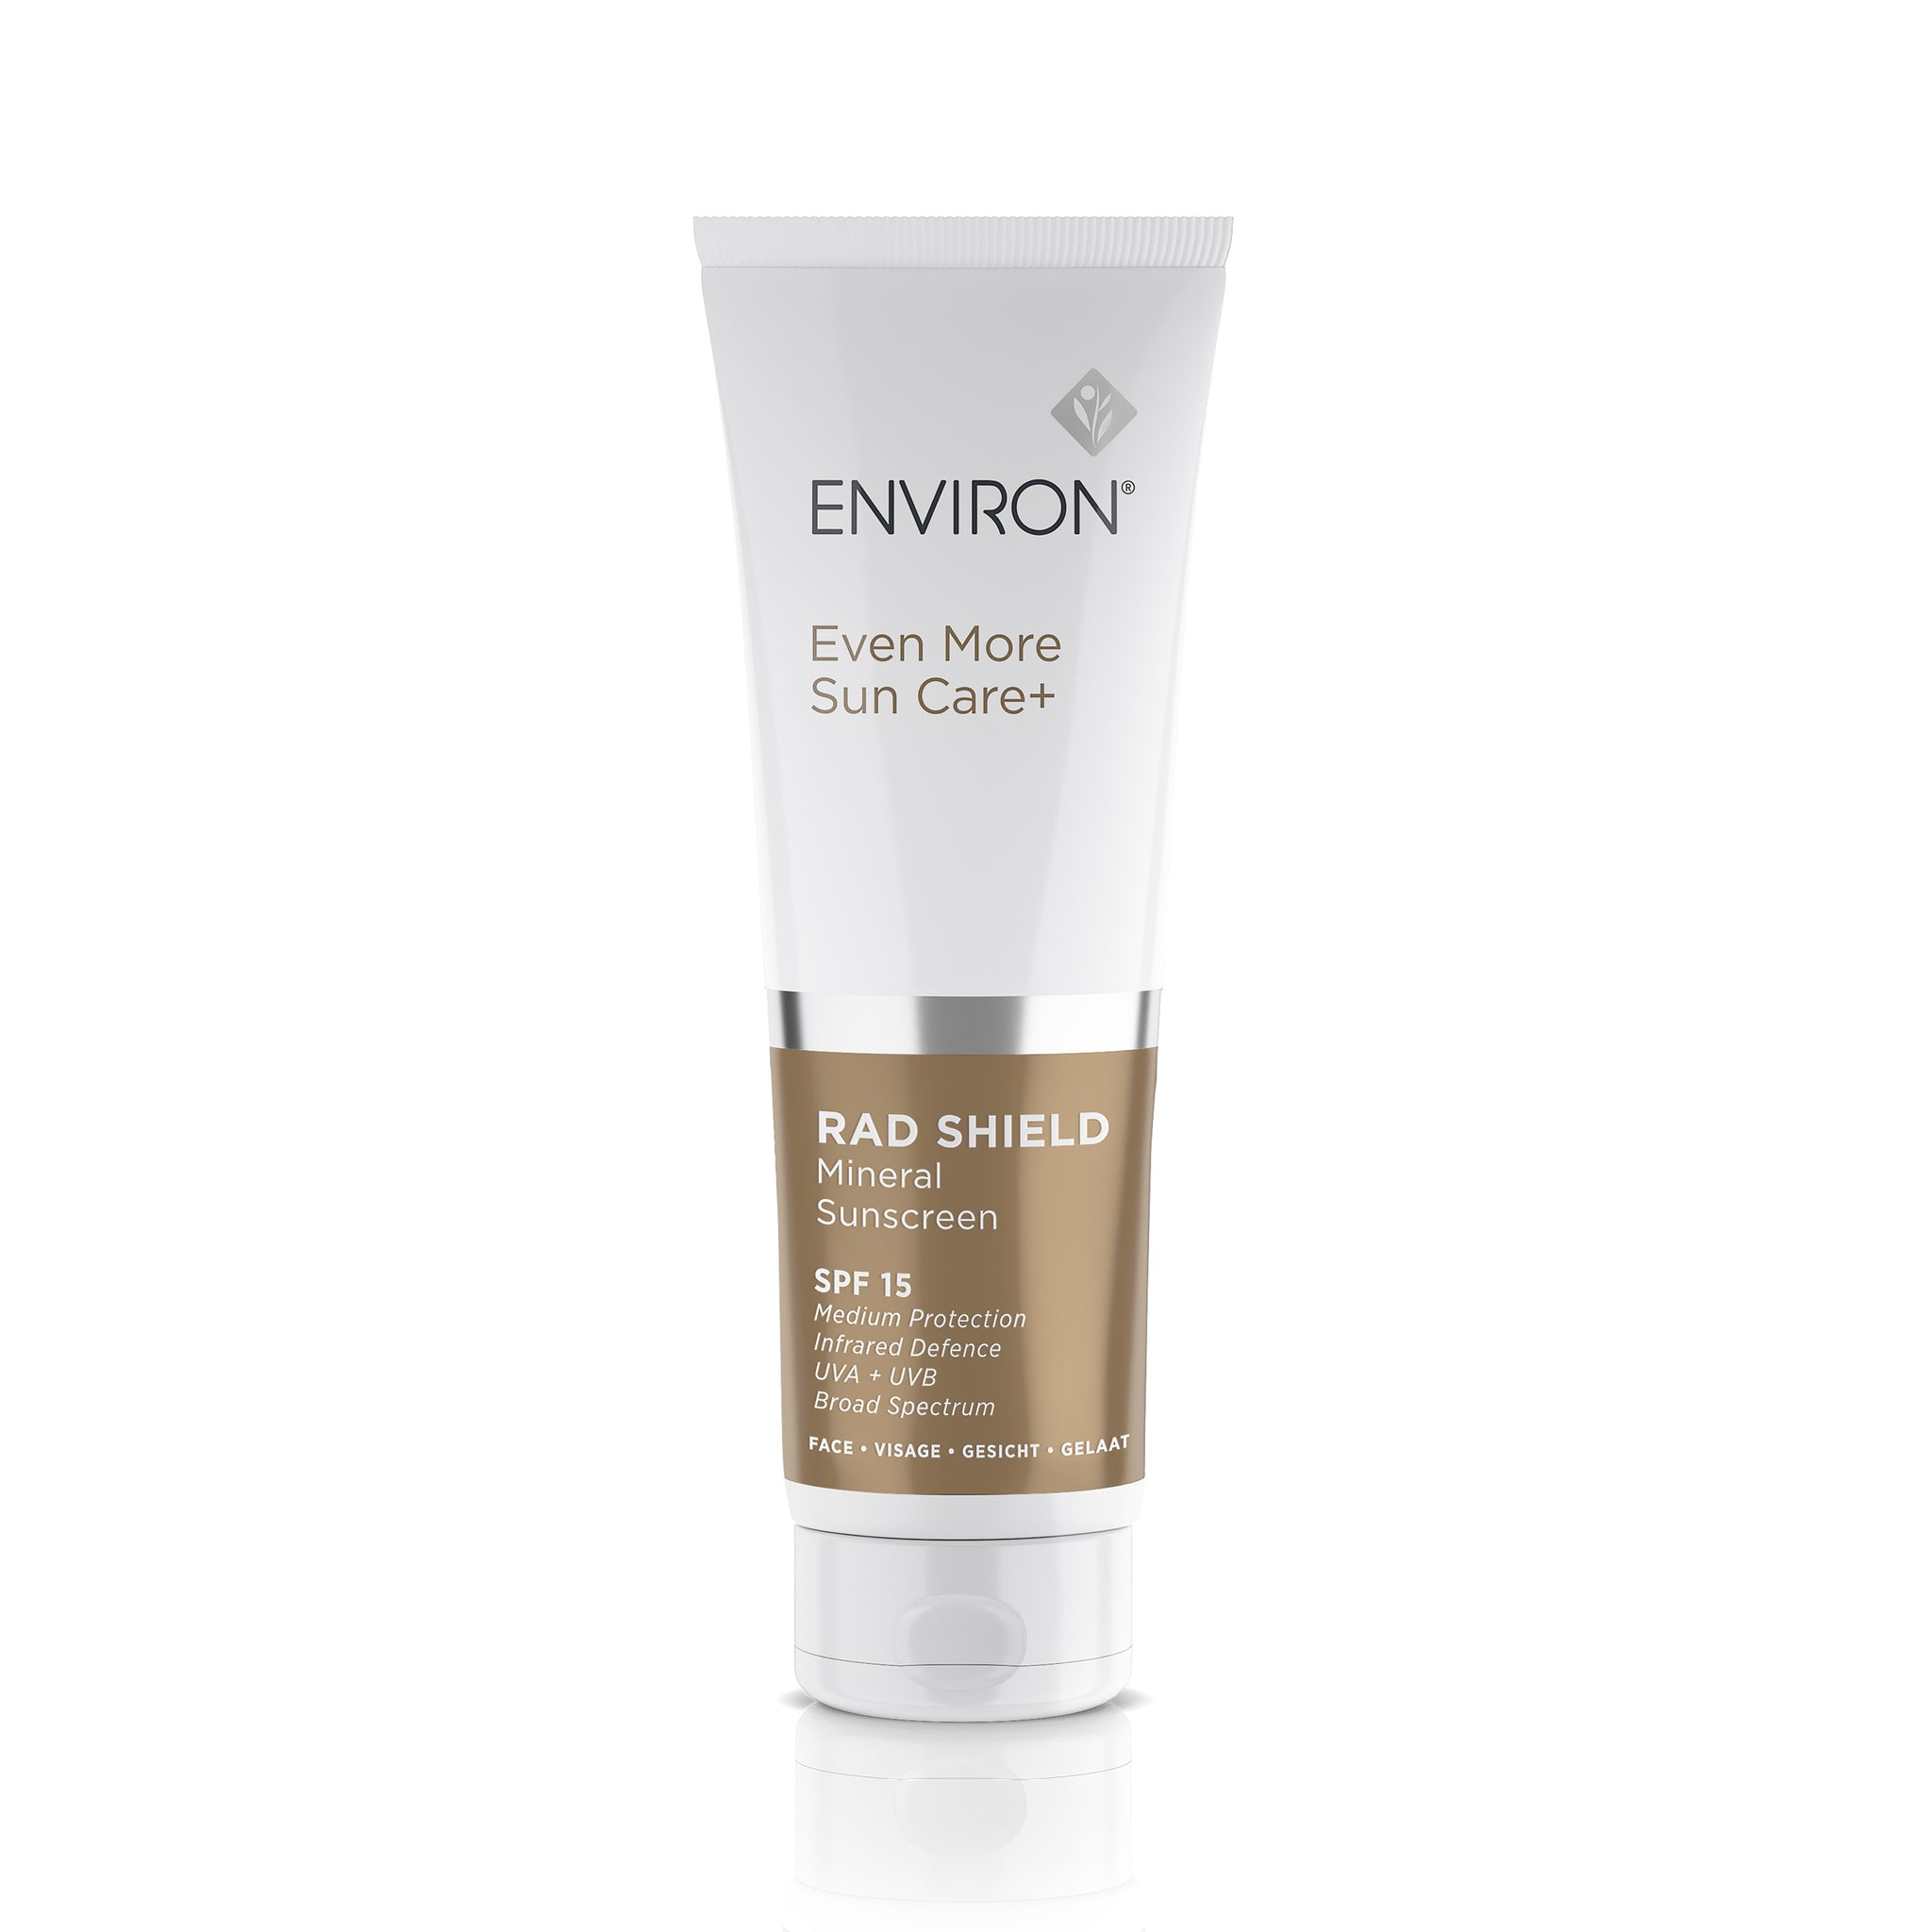 Environ Suncare RAD Shield SPF15 Mineral Sunscreen